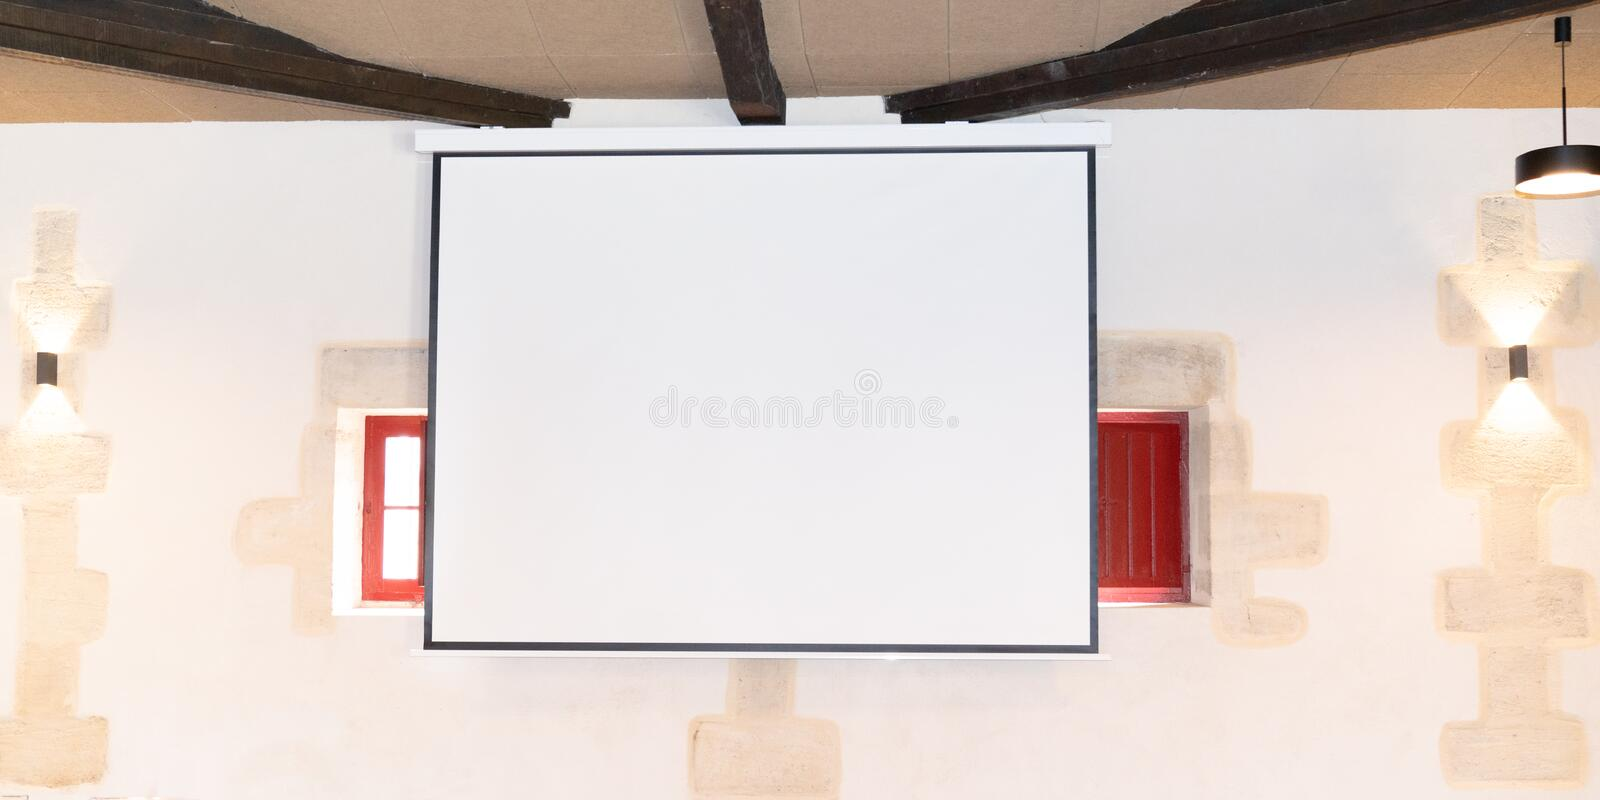 White blank empty screen for overhead projector in the meeting room stock photo